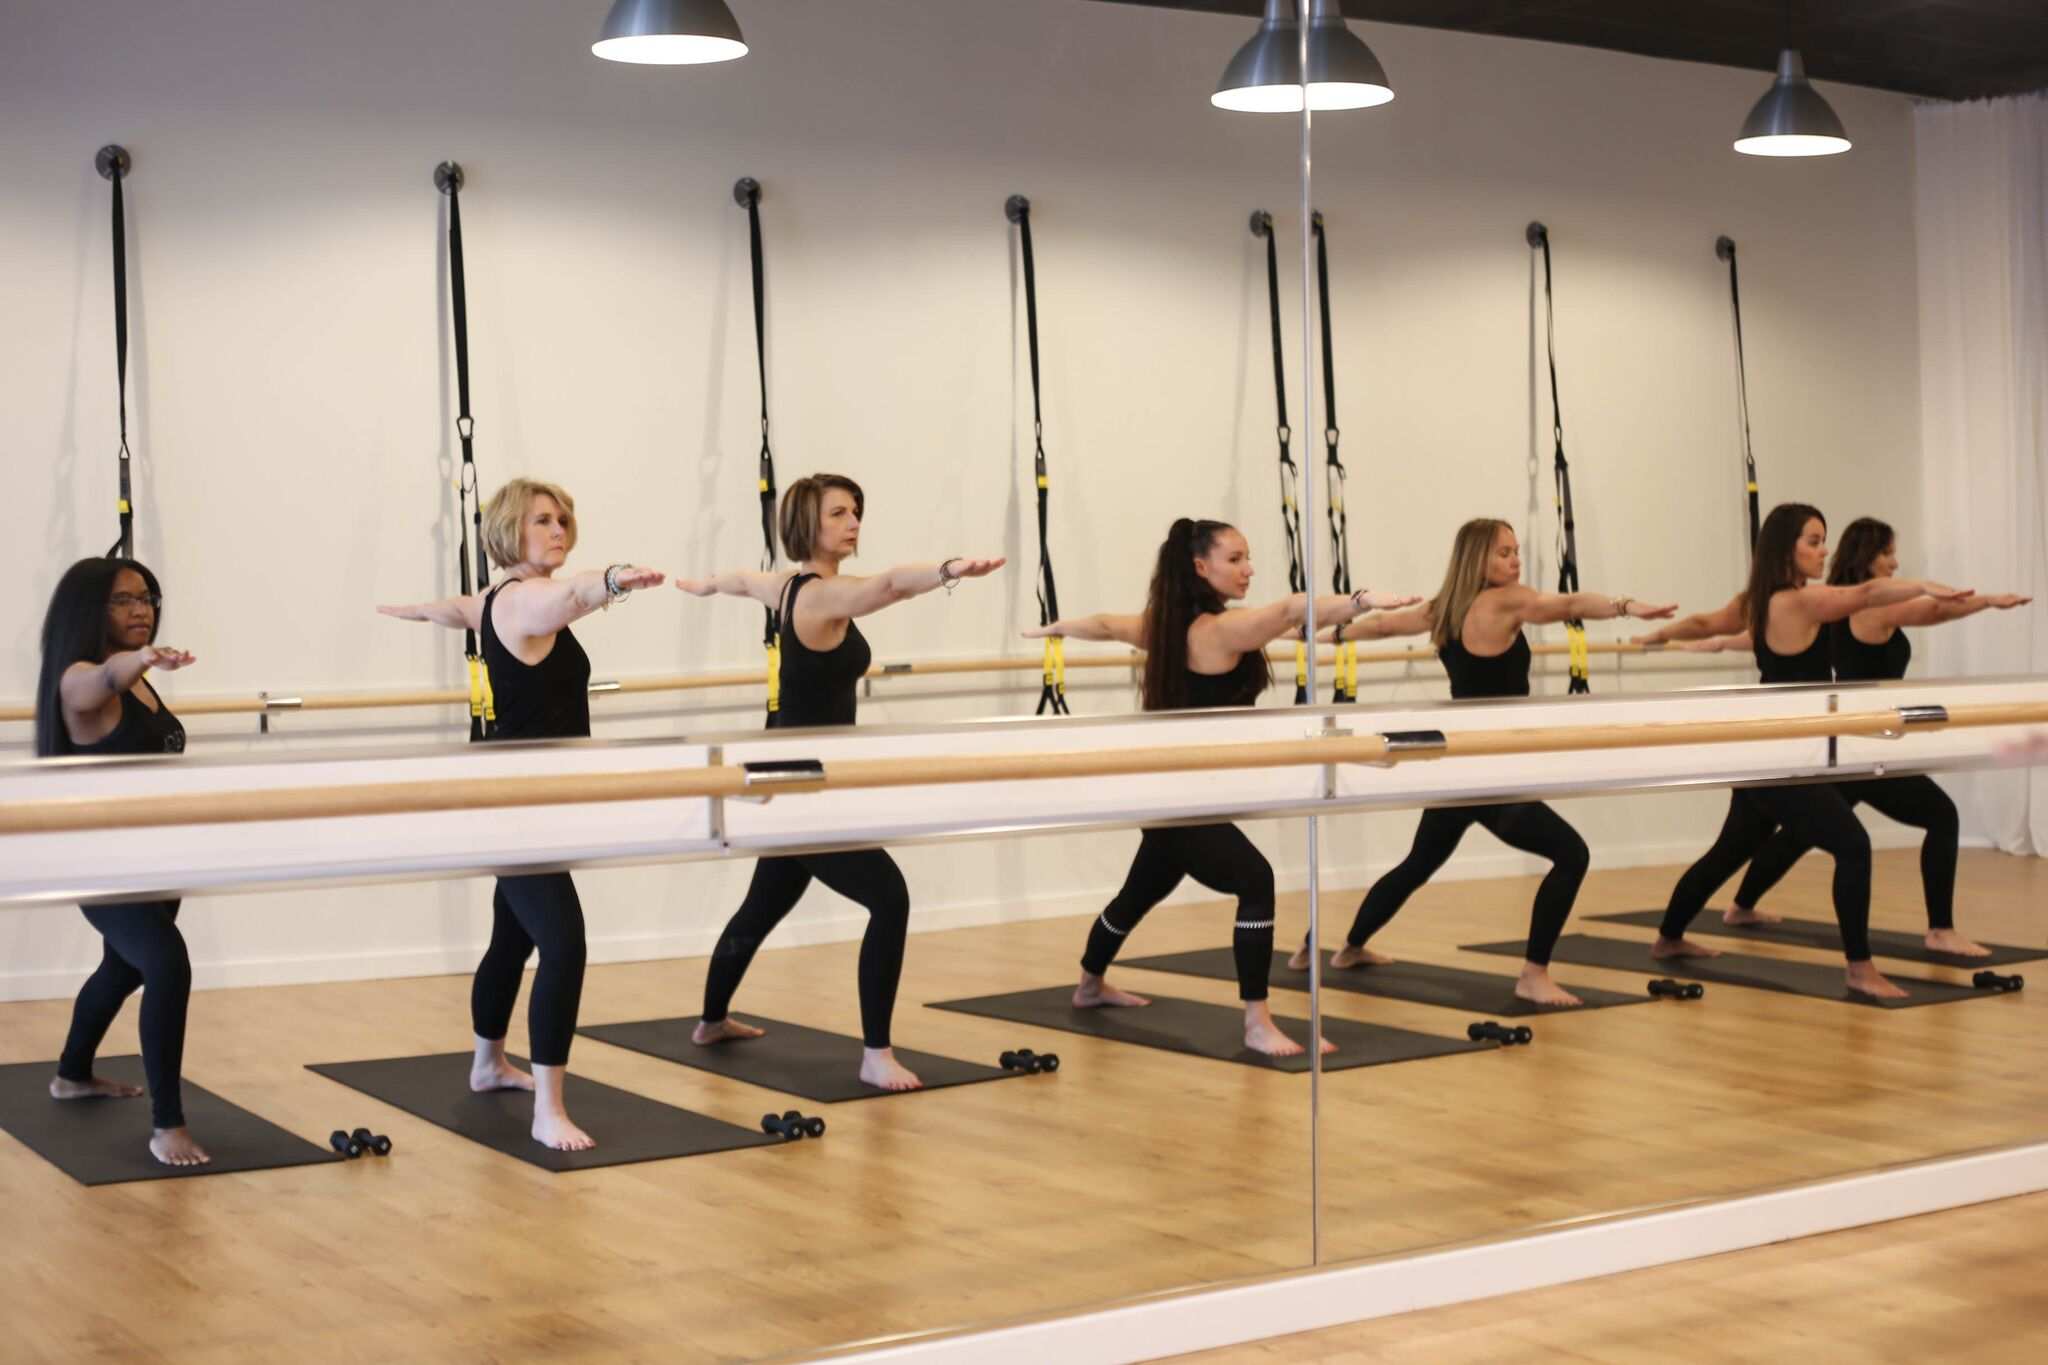 Hiit The Pilates Barre Yoga Pilates Barre